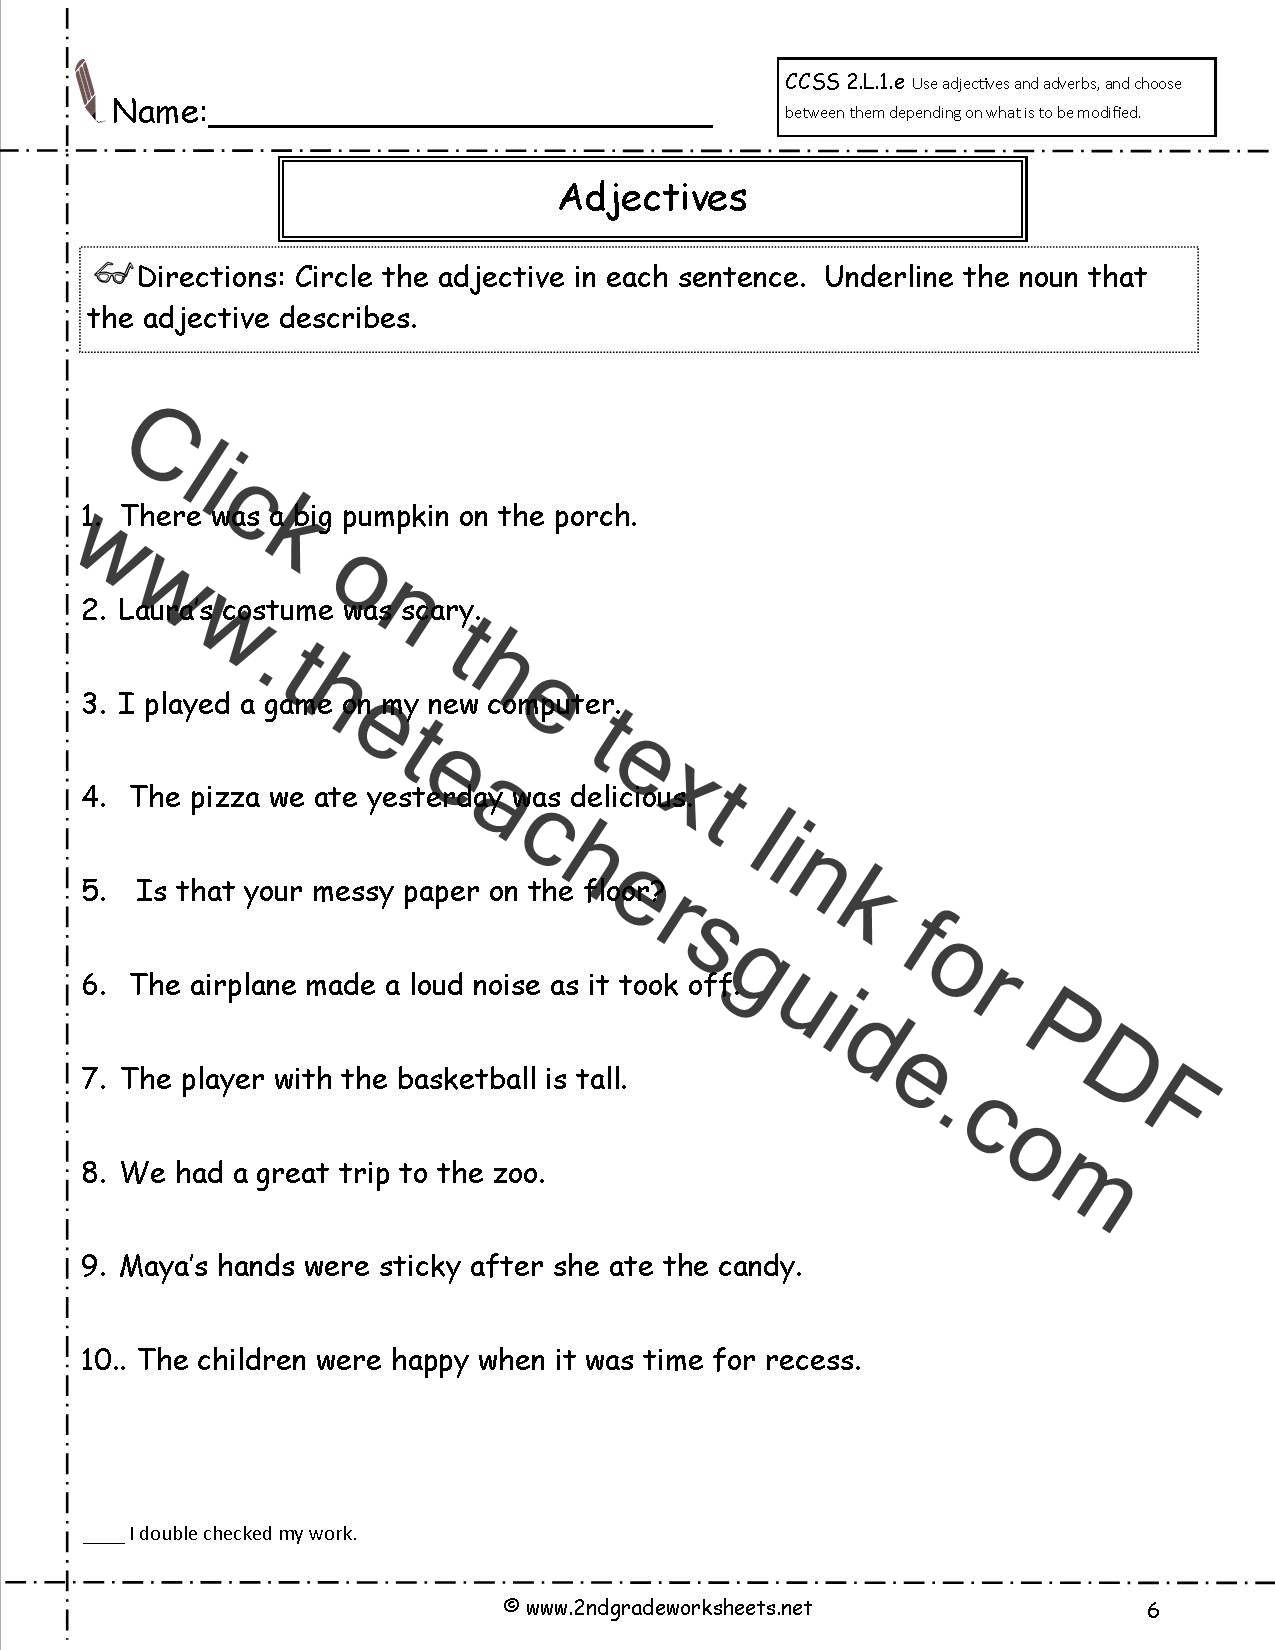 Worksheet Worksheet On Adjectives For Grade 2 adjective worksheet for grade 2 memarchoapraga free using adjectives and adverbs worksheets